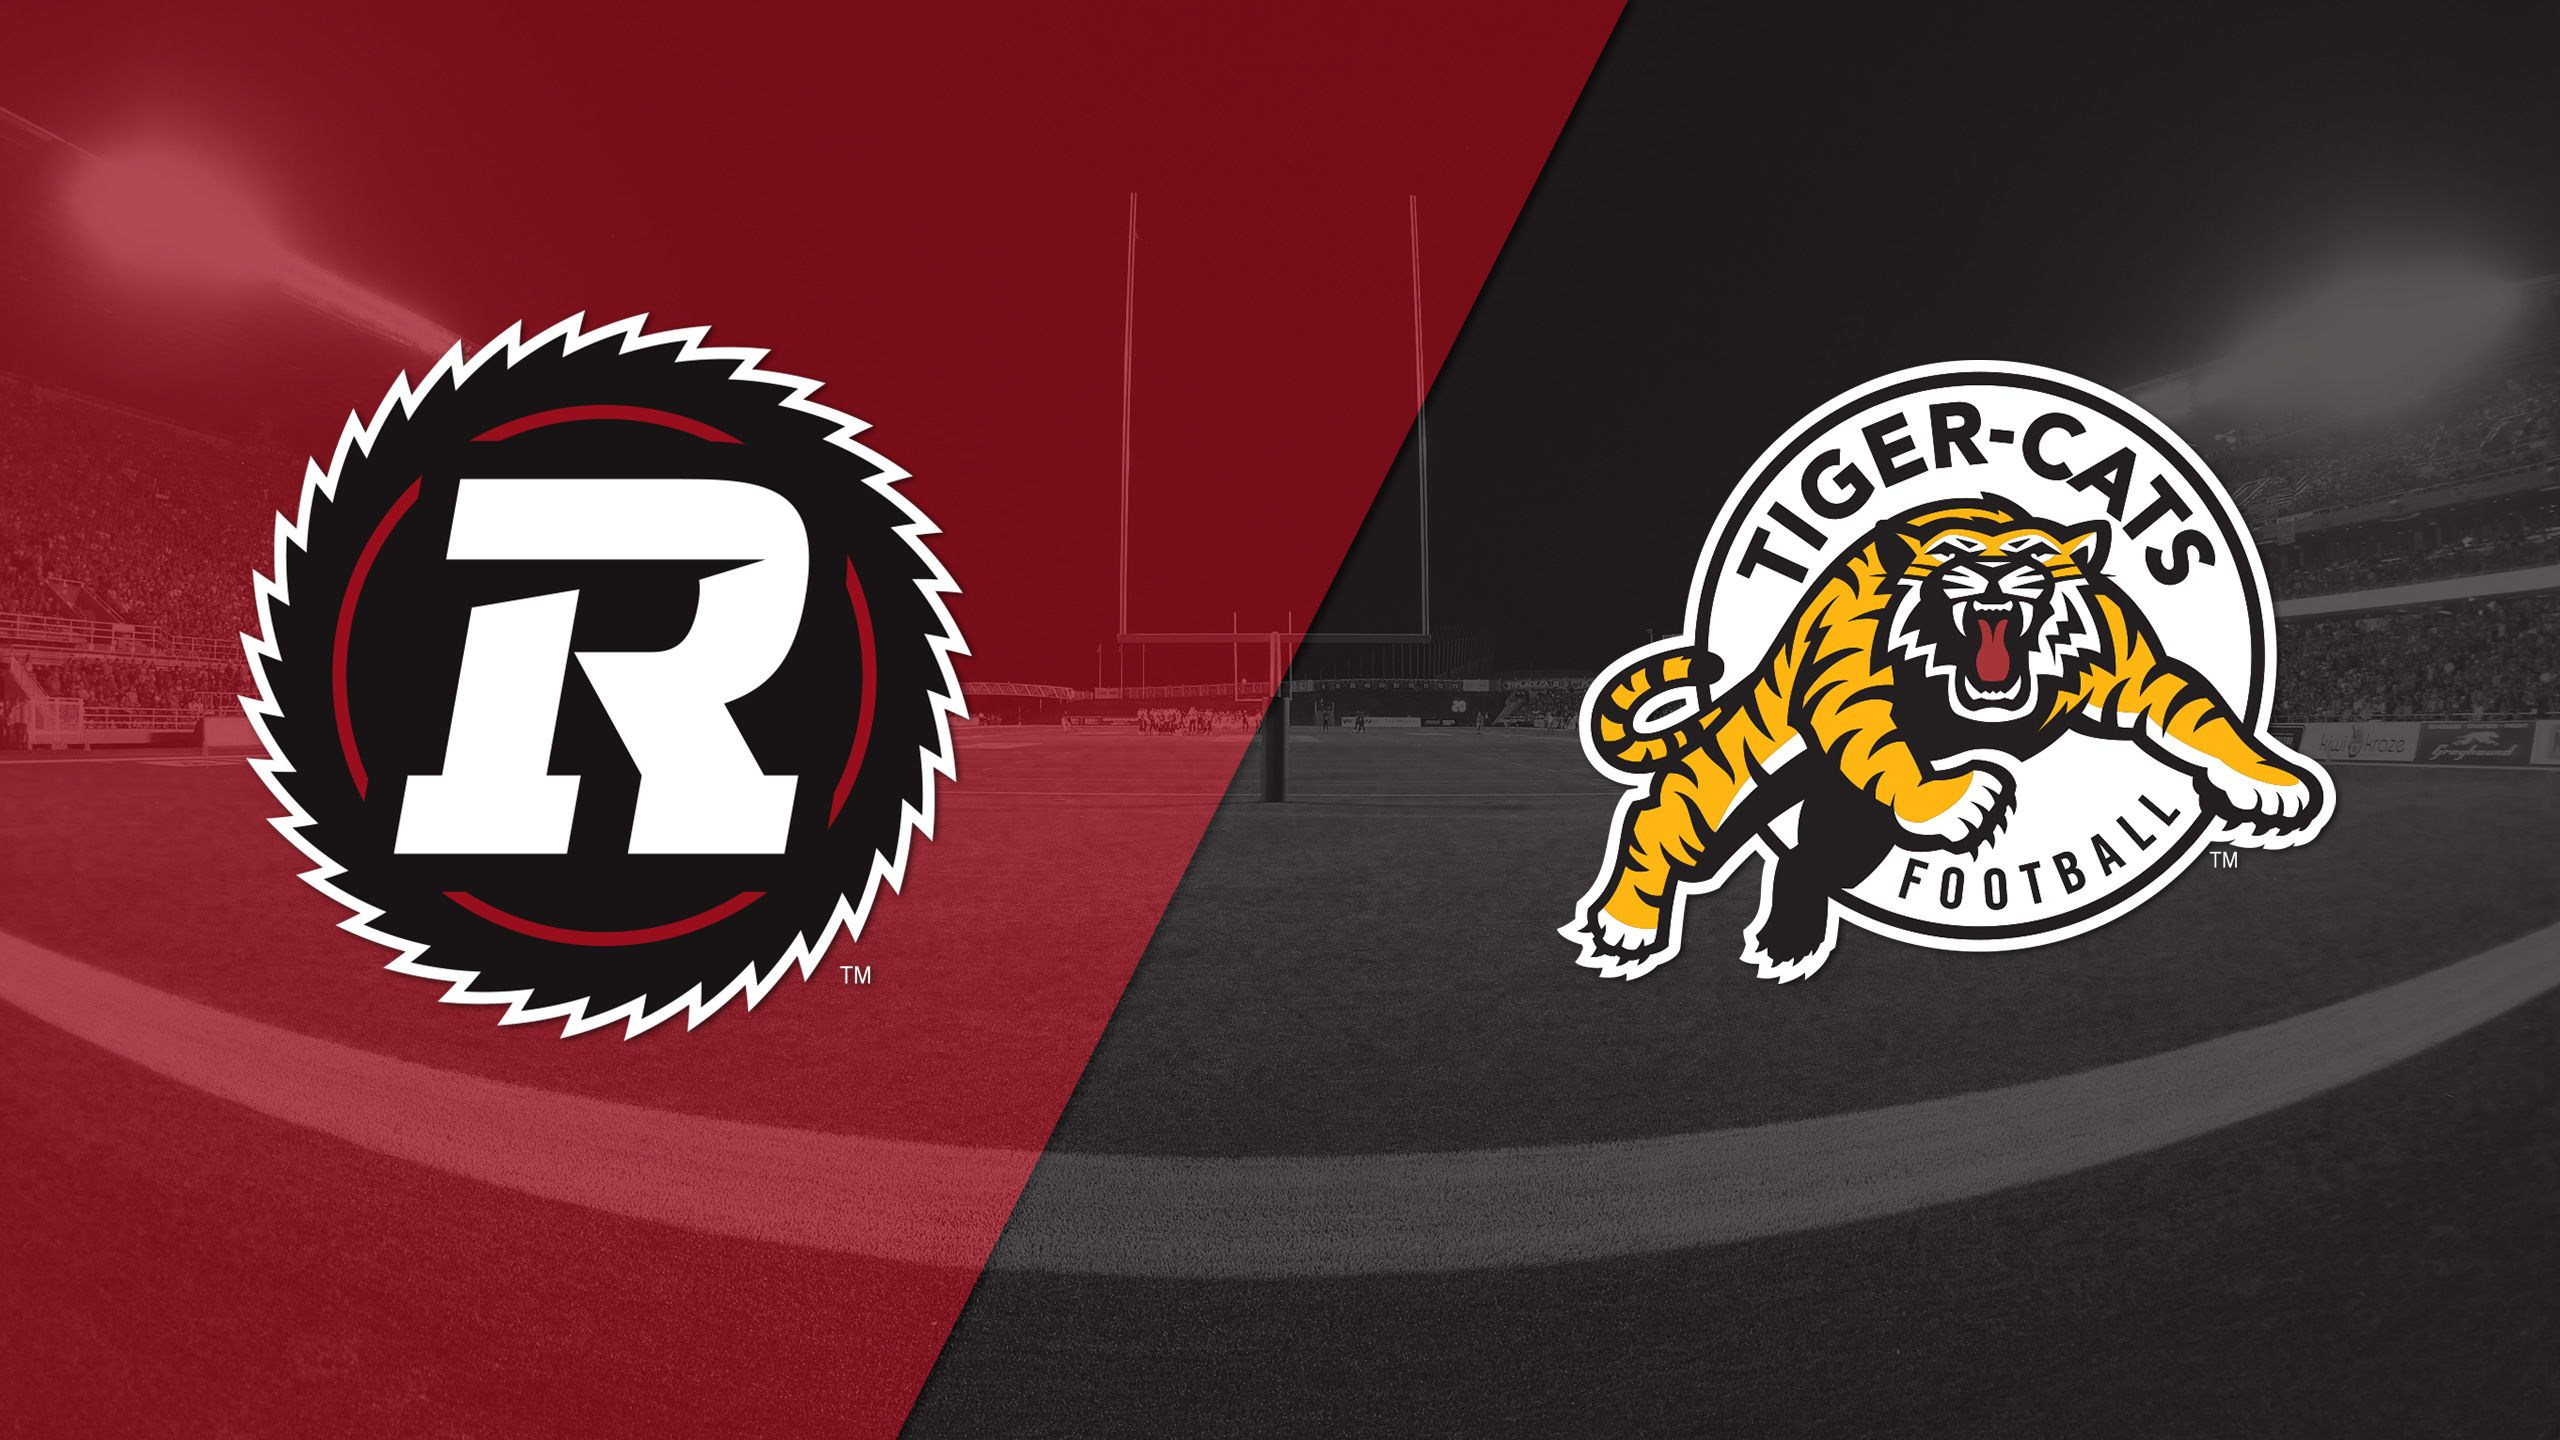 Ottawa Redblacks vs. Hamilton Tiger-Cats